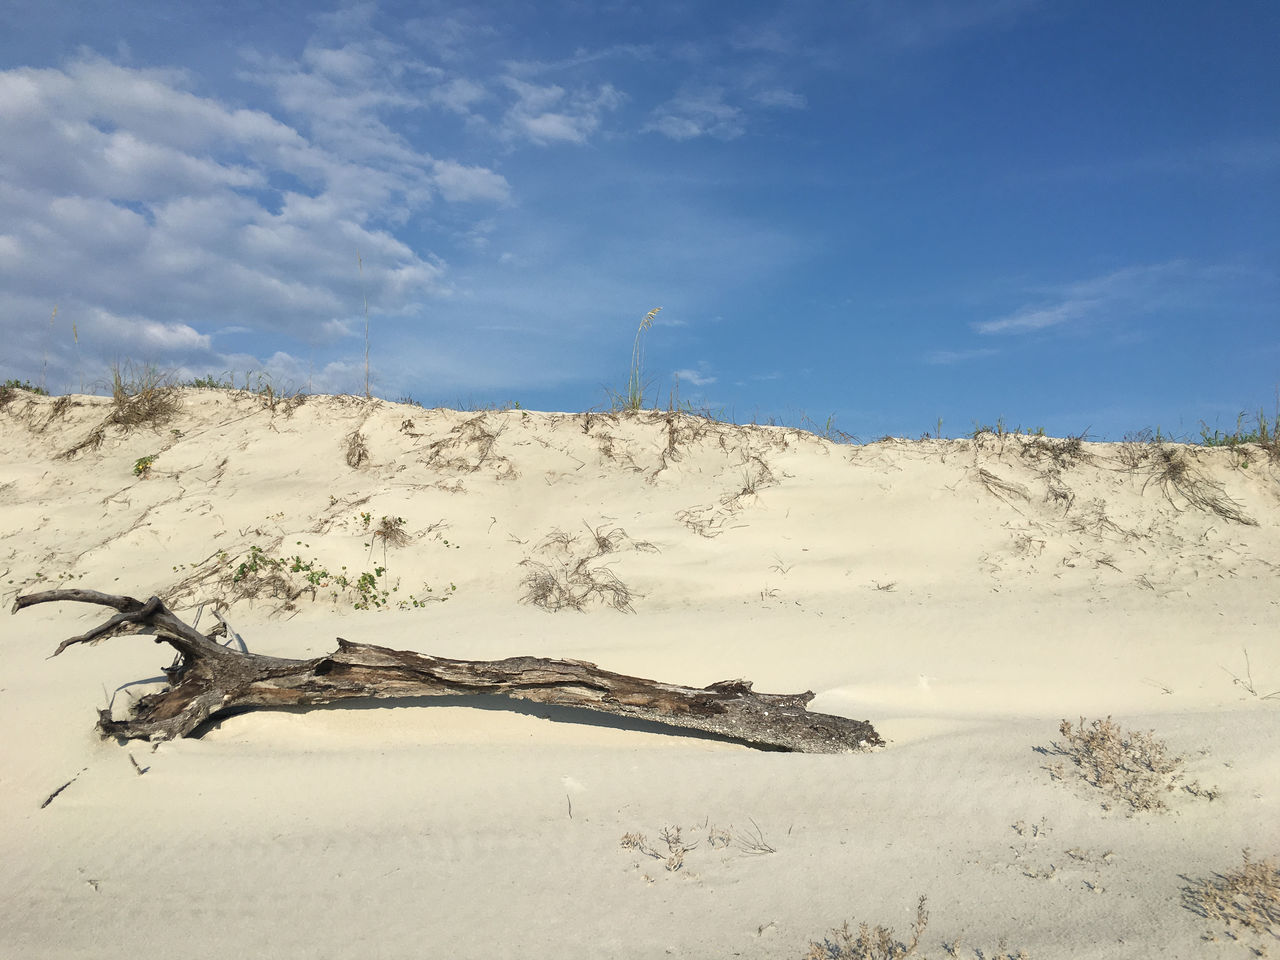 Landscape at the Beach Arid Climate Beauty In Nature Blue Cloud - Sky Day Dead Tree Landscape Nature No People Outdoors Sand Sand Dune Scenics Sky Tranquil Scene Tranquility Tree